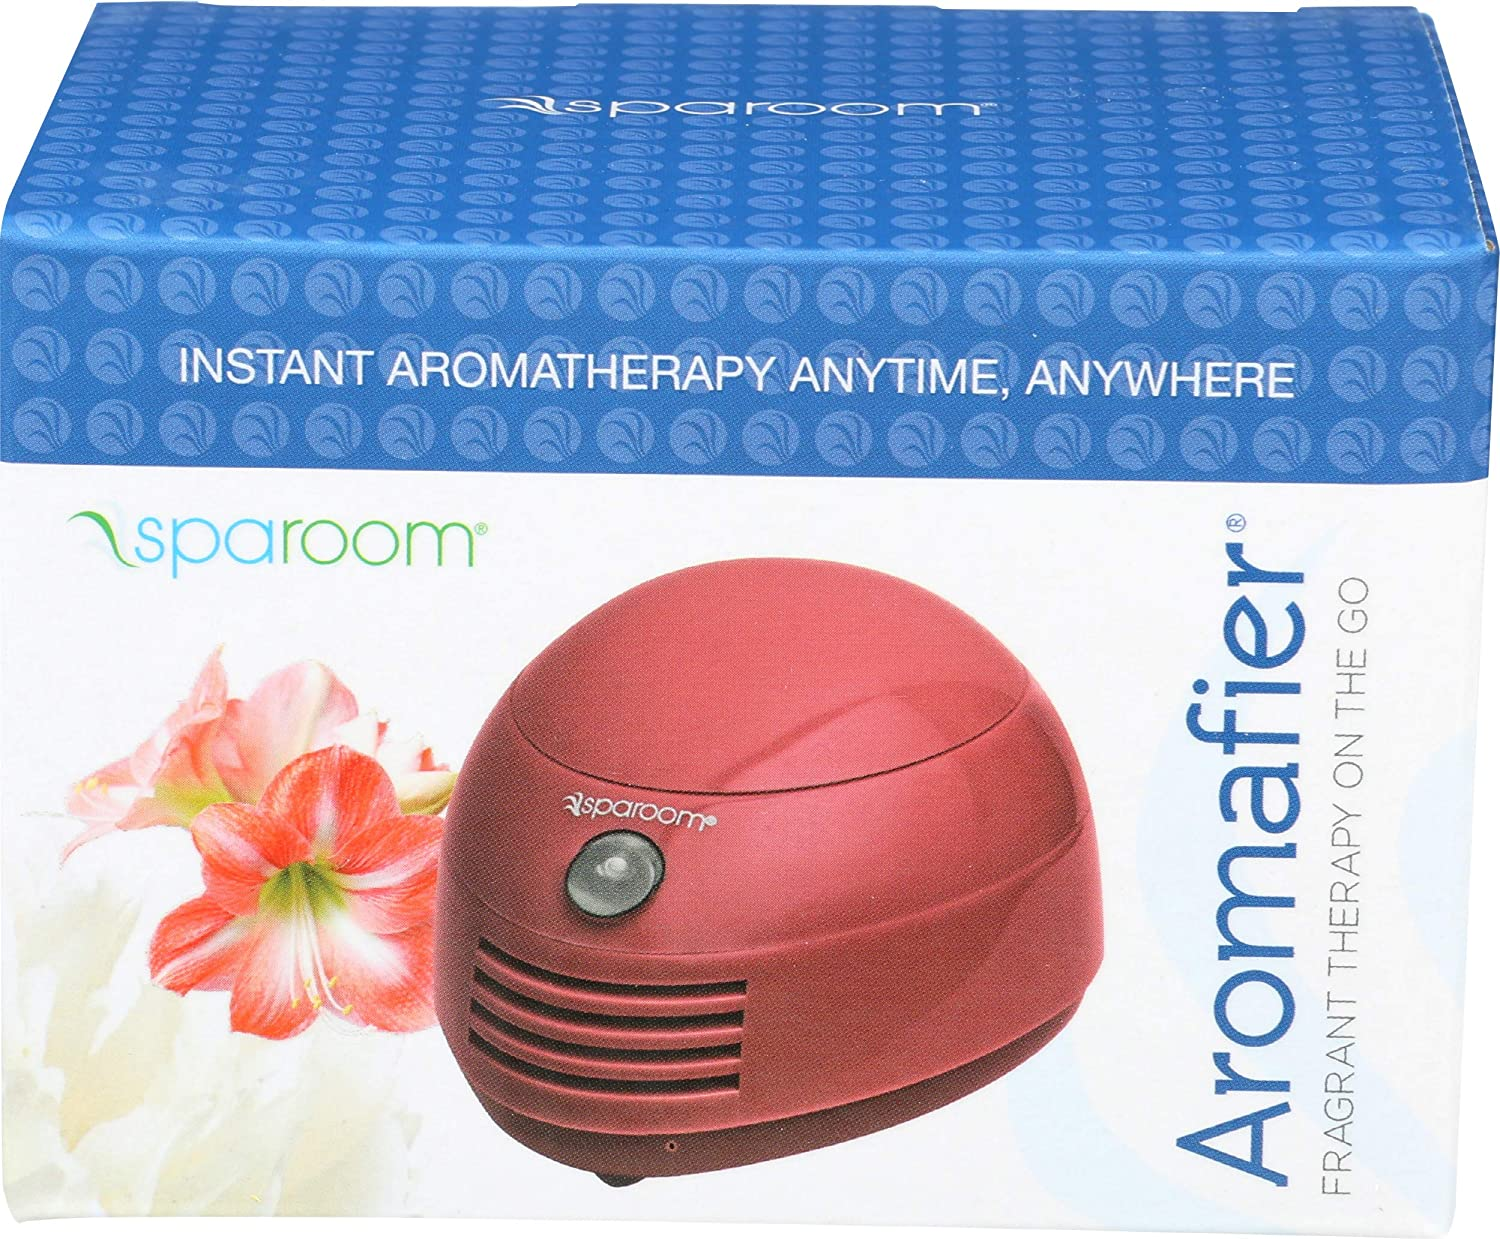 SpaRoom Aromafier Portable Fragrance Diffuser Assortment, Burgundy/Taupe/Periwinkle, 0.25 Pound